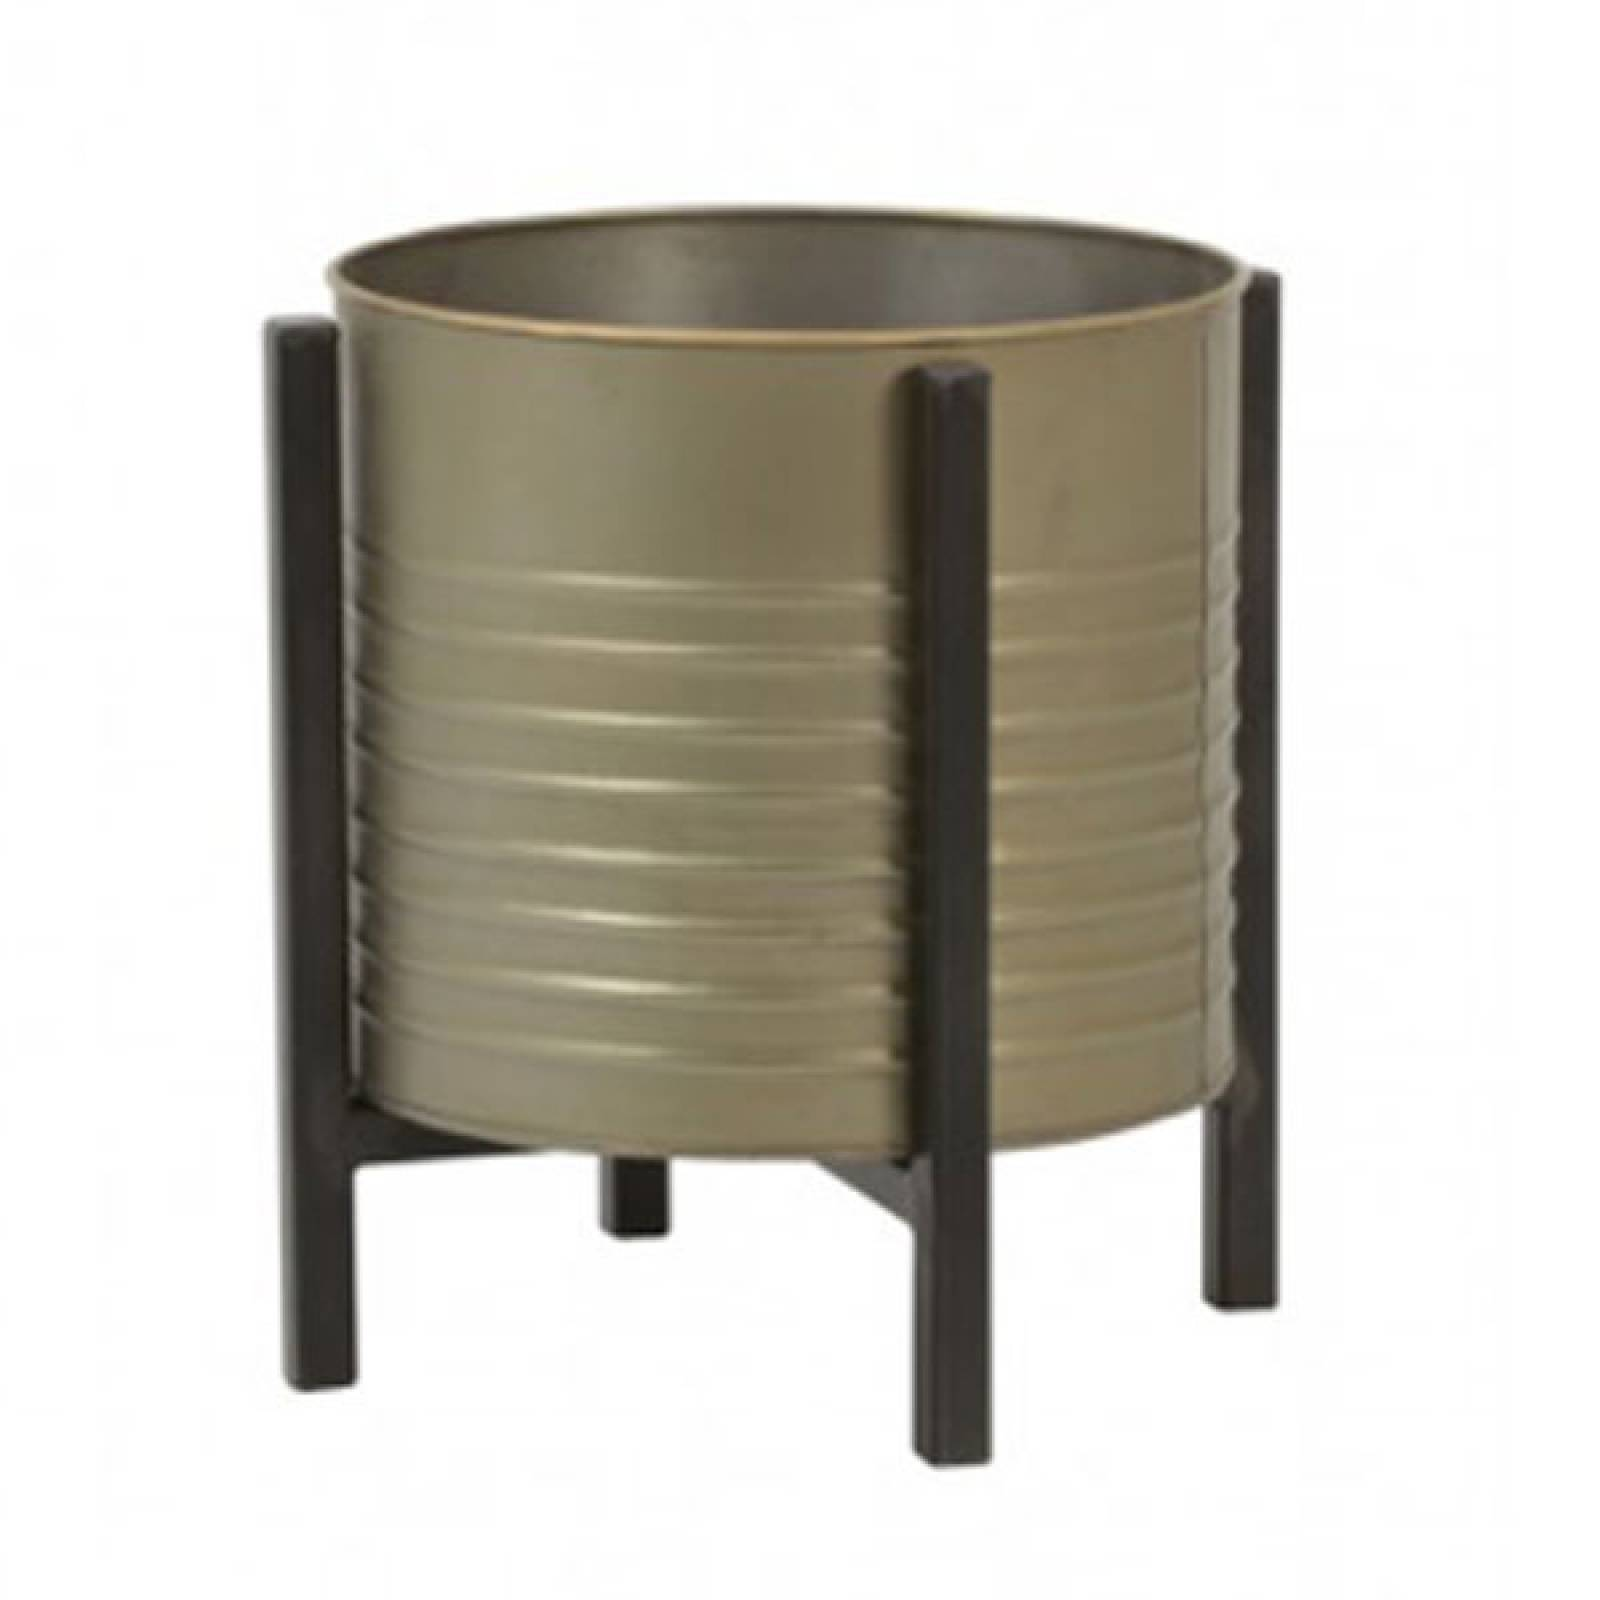 Barrel Bin On Legs Bronze Tin thumbnails